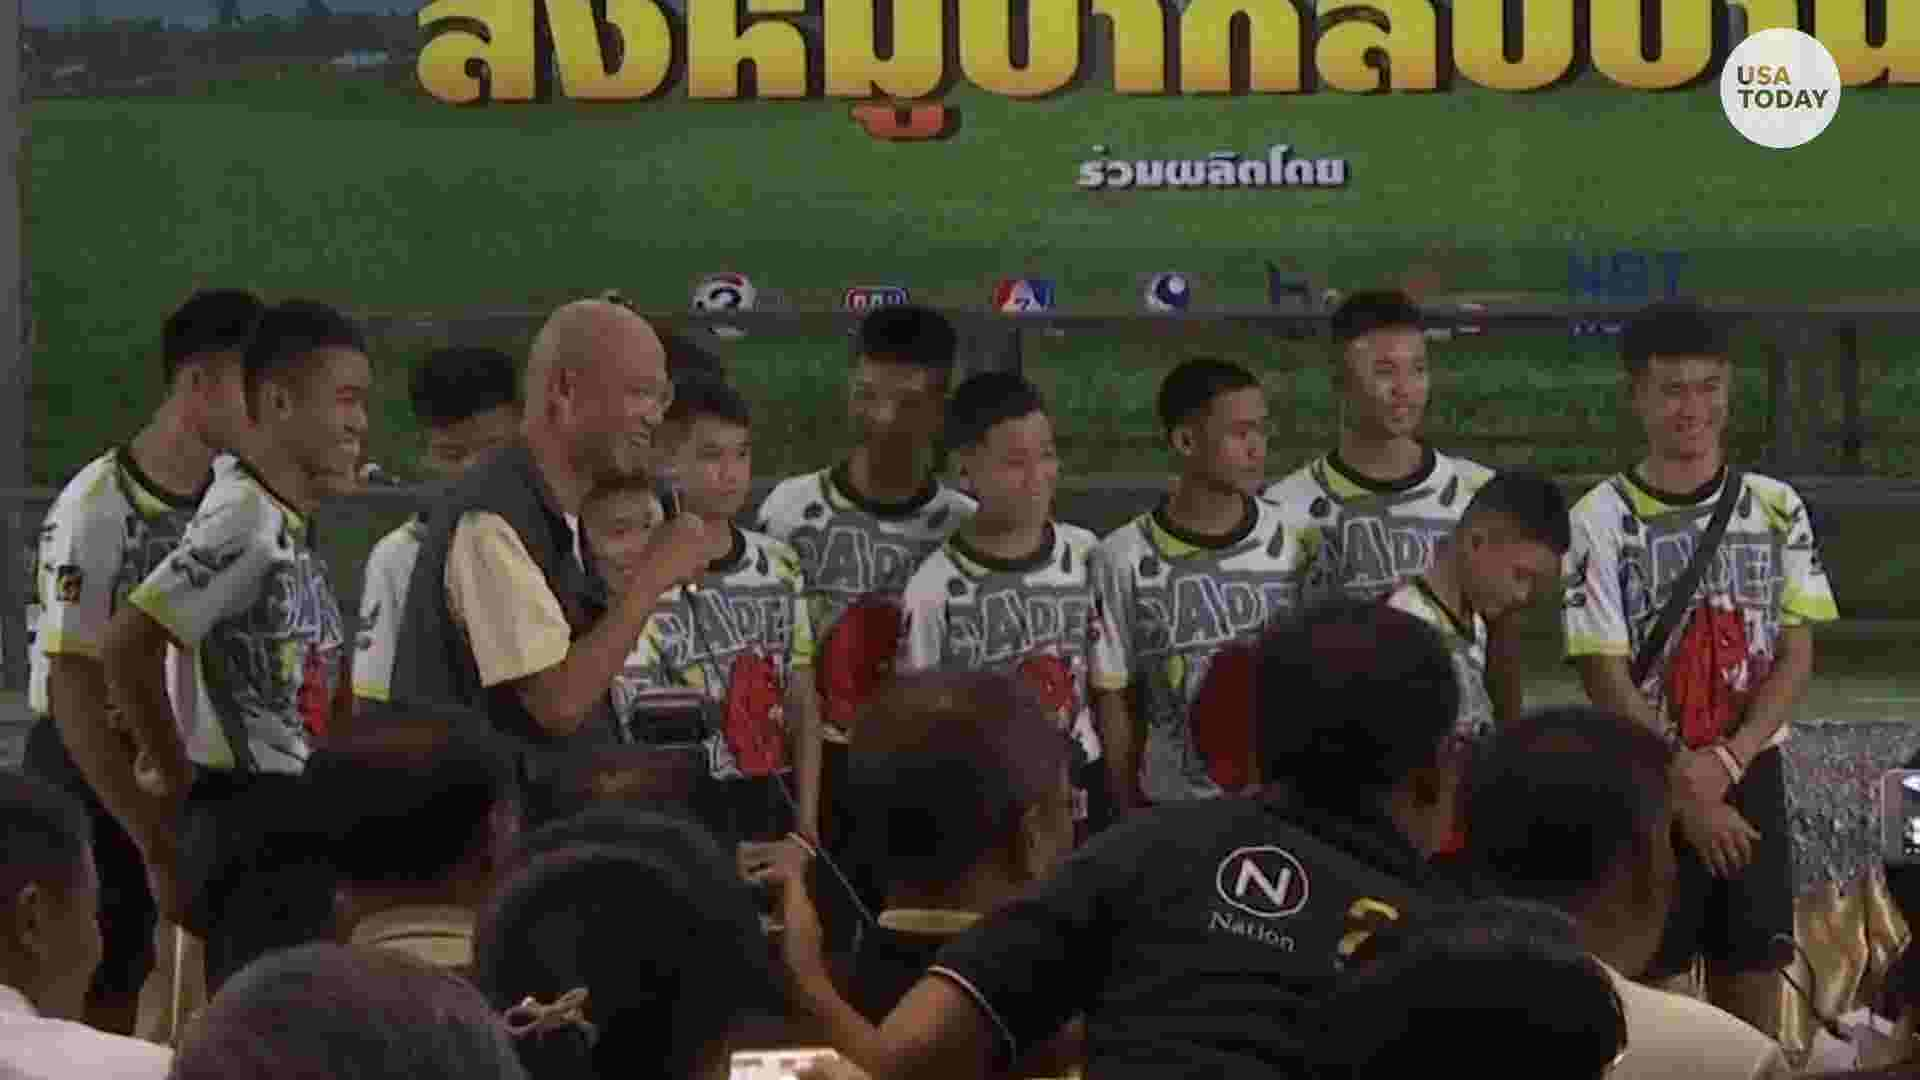 Thai Cave Rescue To Be Told In Kids Book For Middle Schoolers